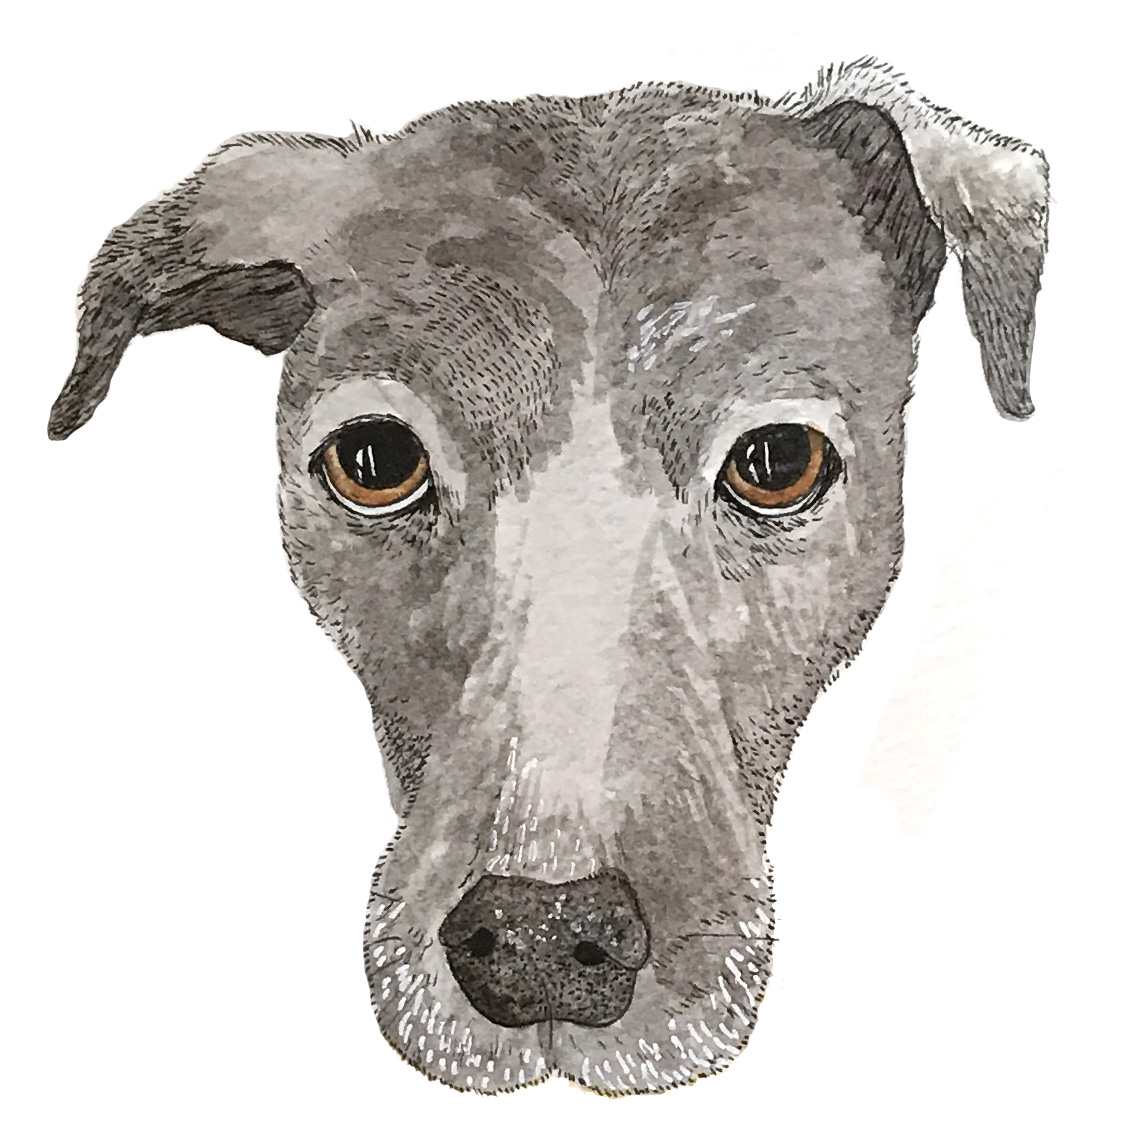 lana dog custom pet portrait.jpg